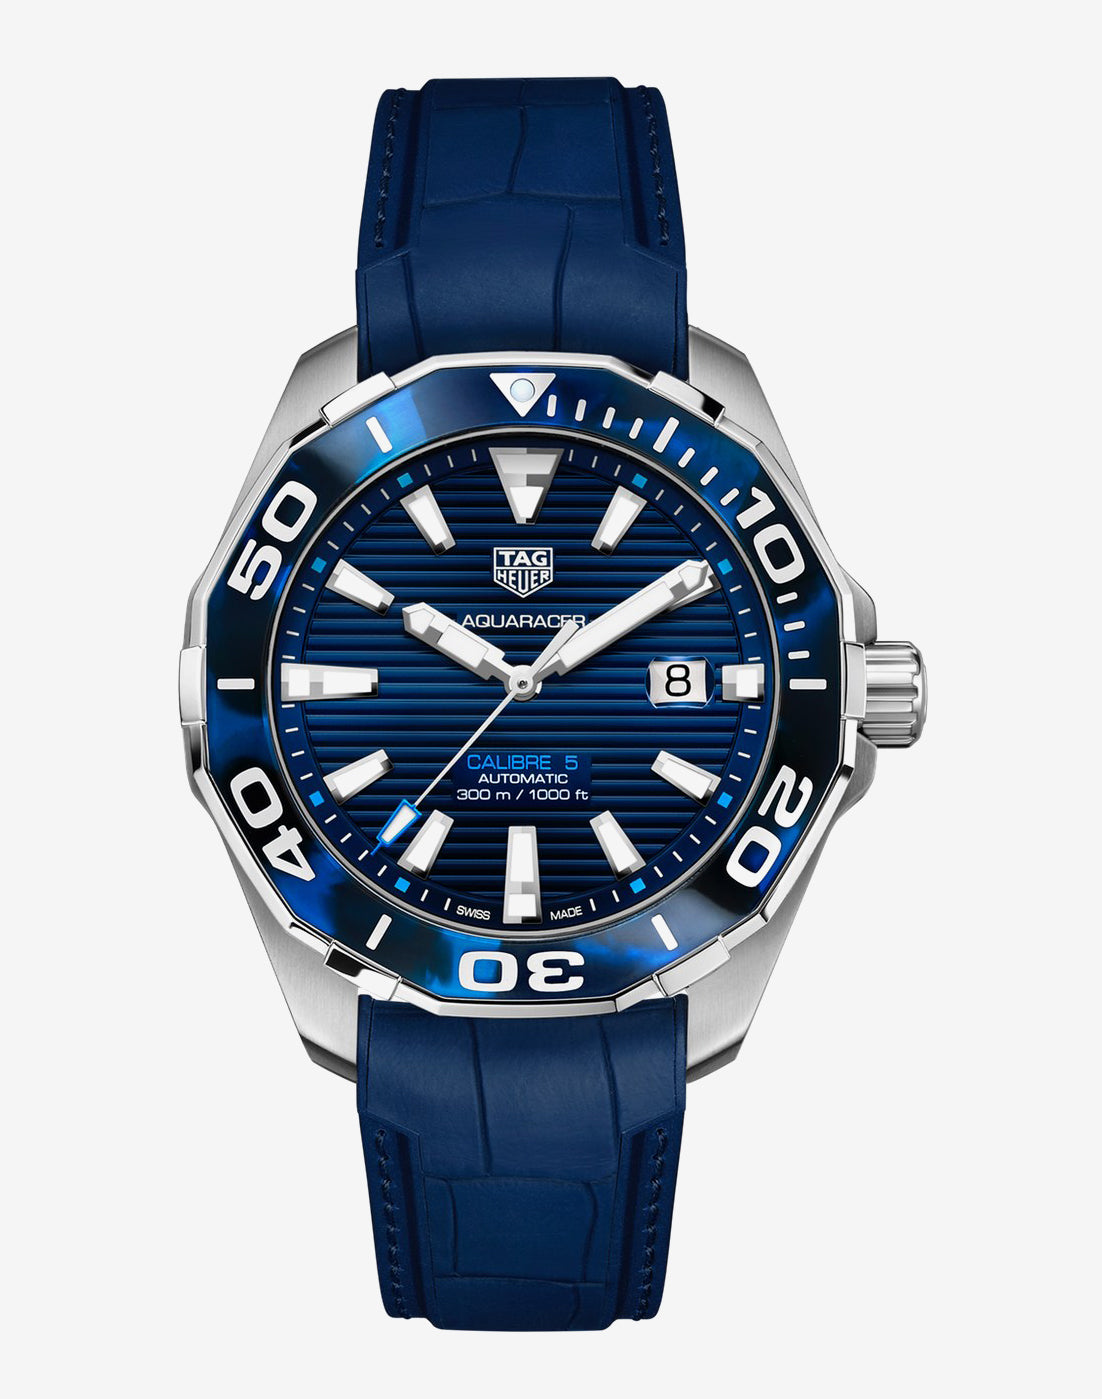 TAG Heuer Aqua Racer 300m BLUE 43mm Ref#WAY201P.FT6178